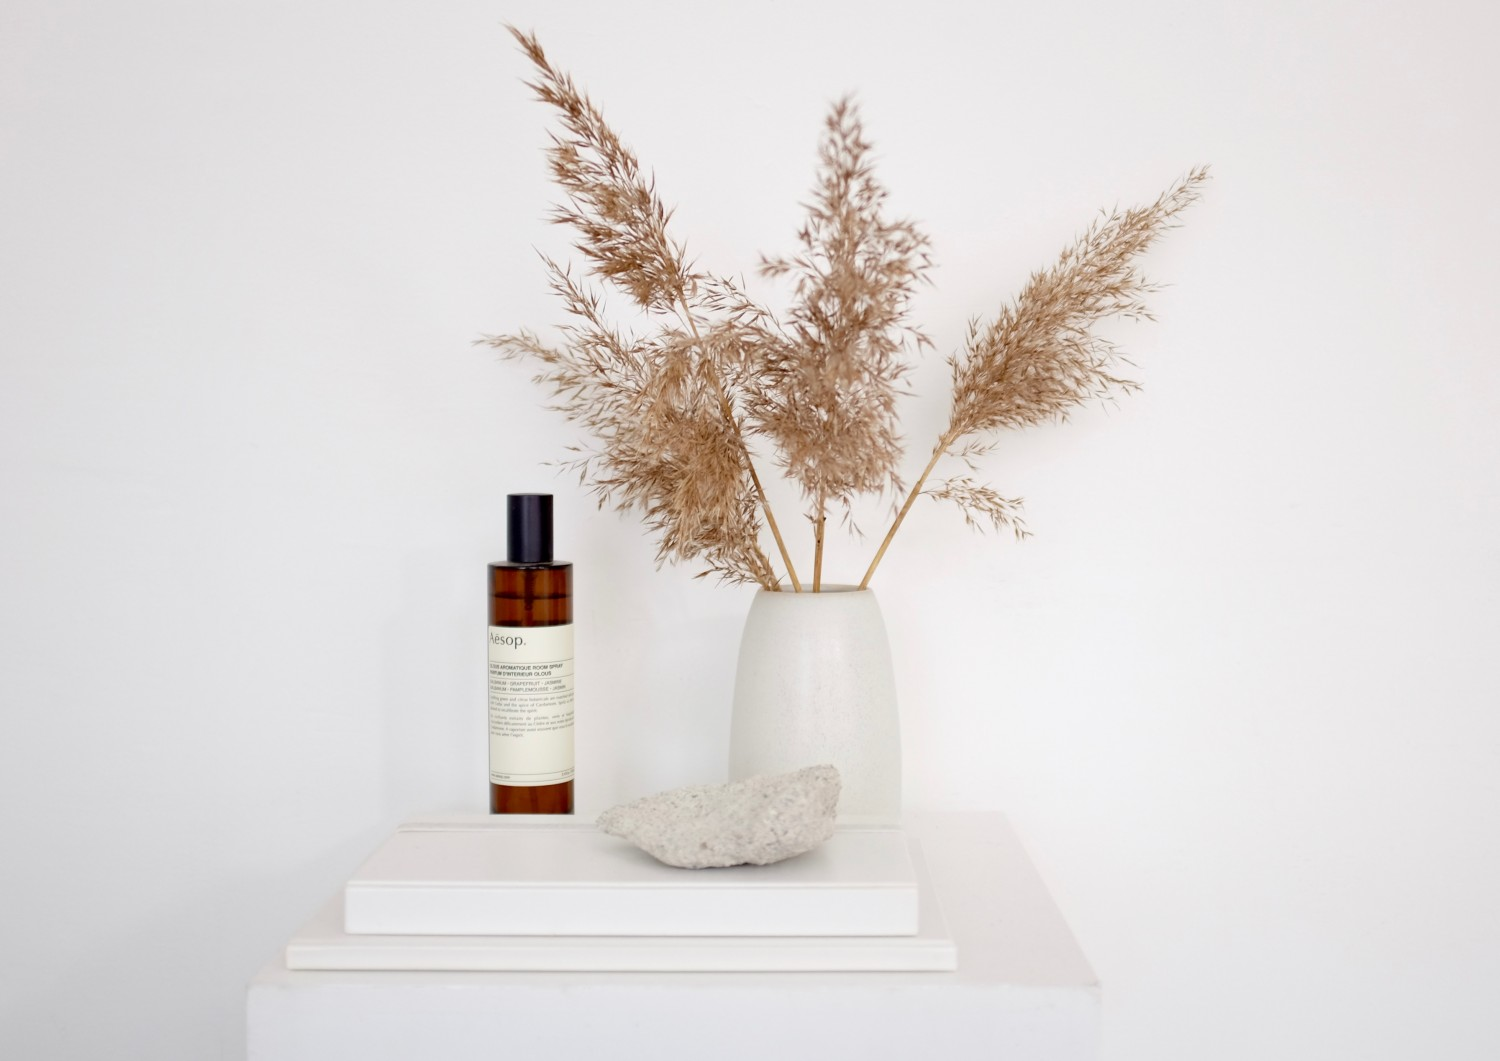 Plinth - a pedestal I use to exhibit some of my favourite interior objects. Here Aesop roomspray and a ceramic vase with dried pampas grass